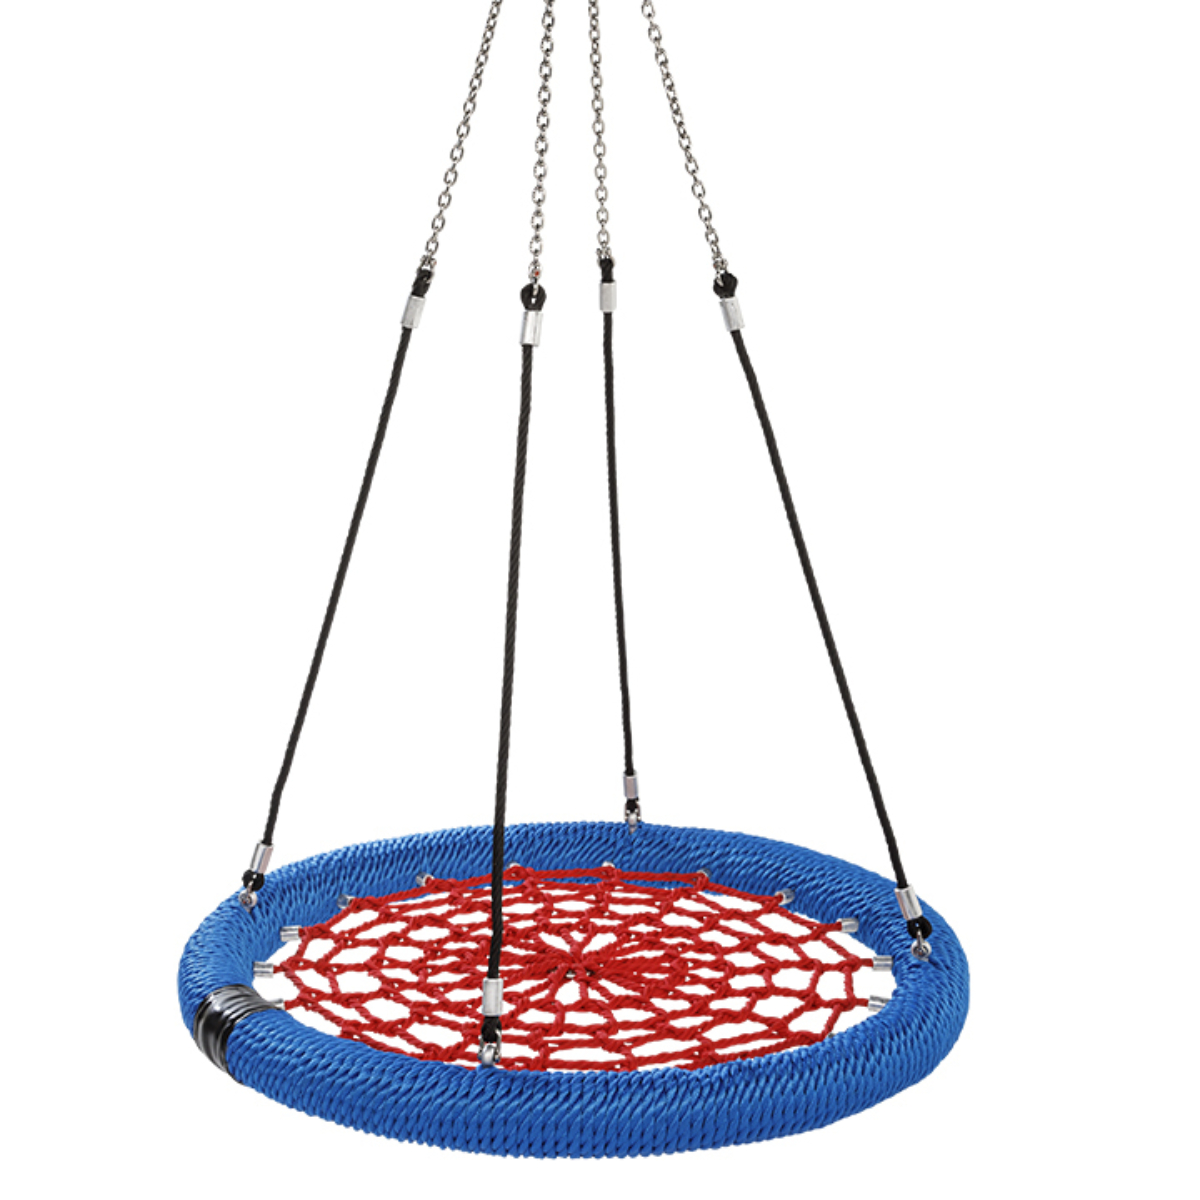 Nest swing single point suspension sttswings KBT